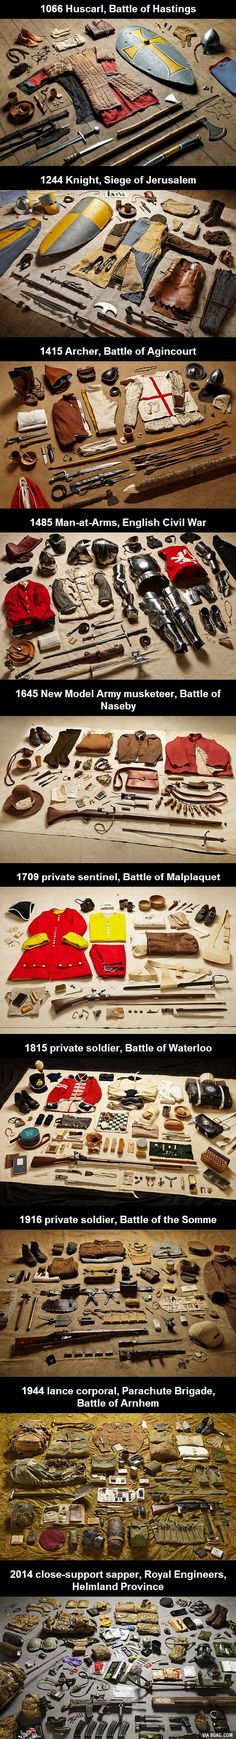 Soldier gear through the ages [540x3981]